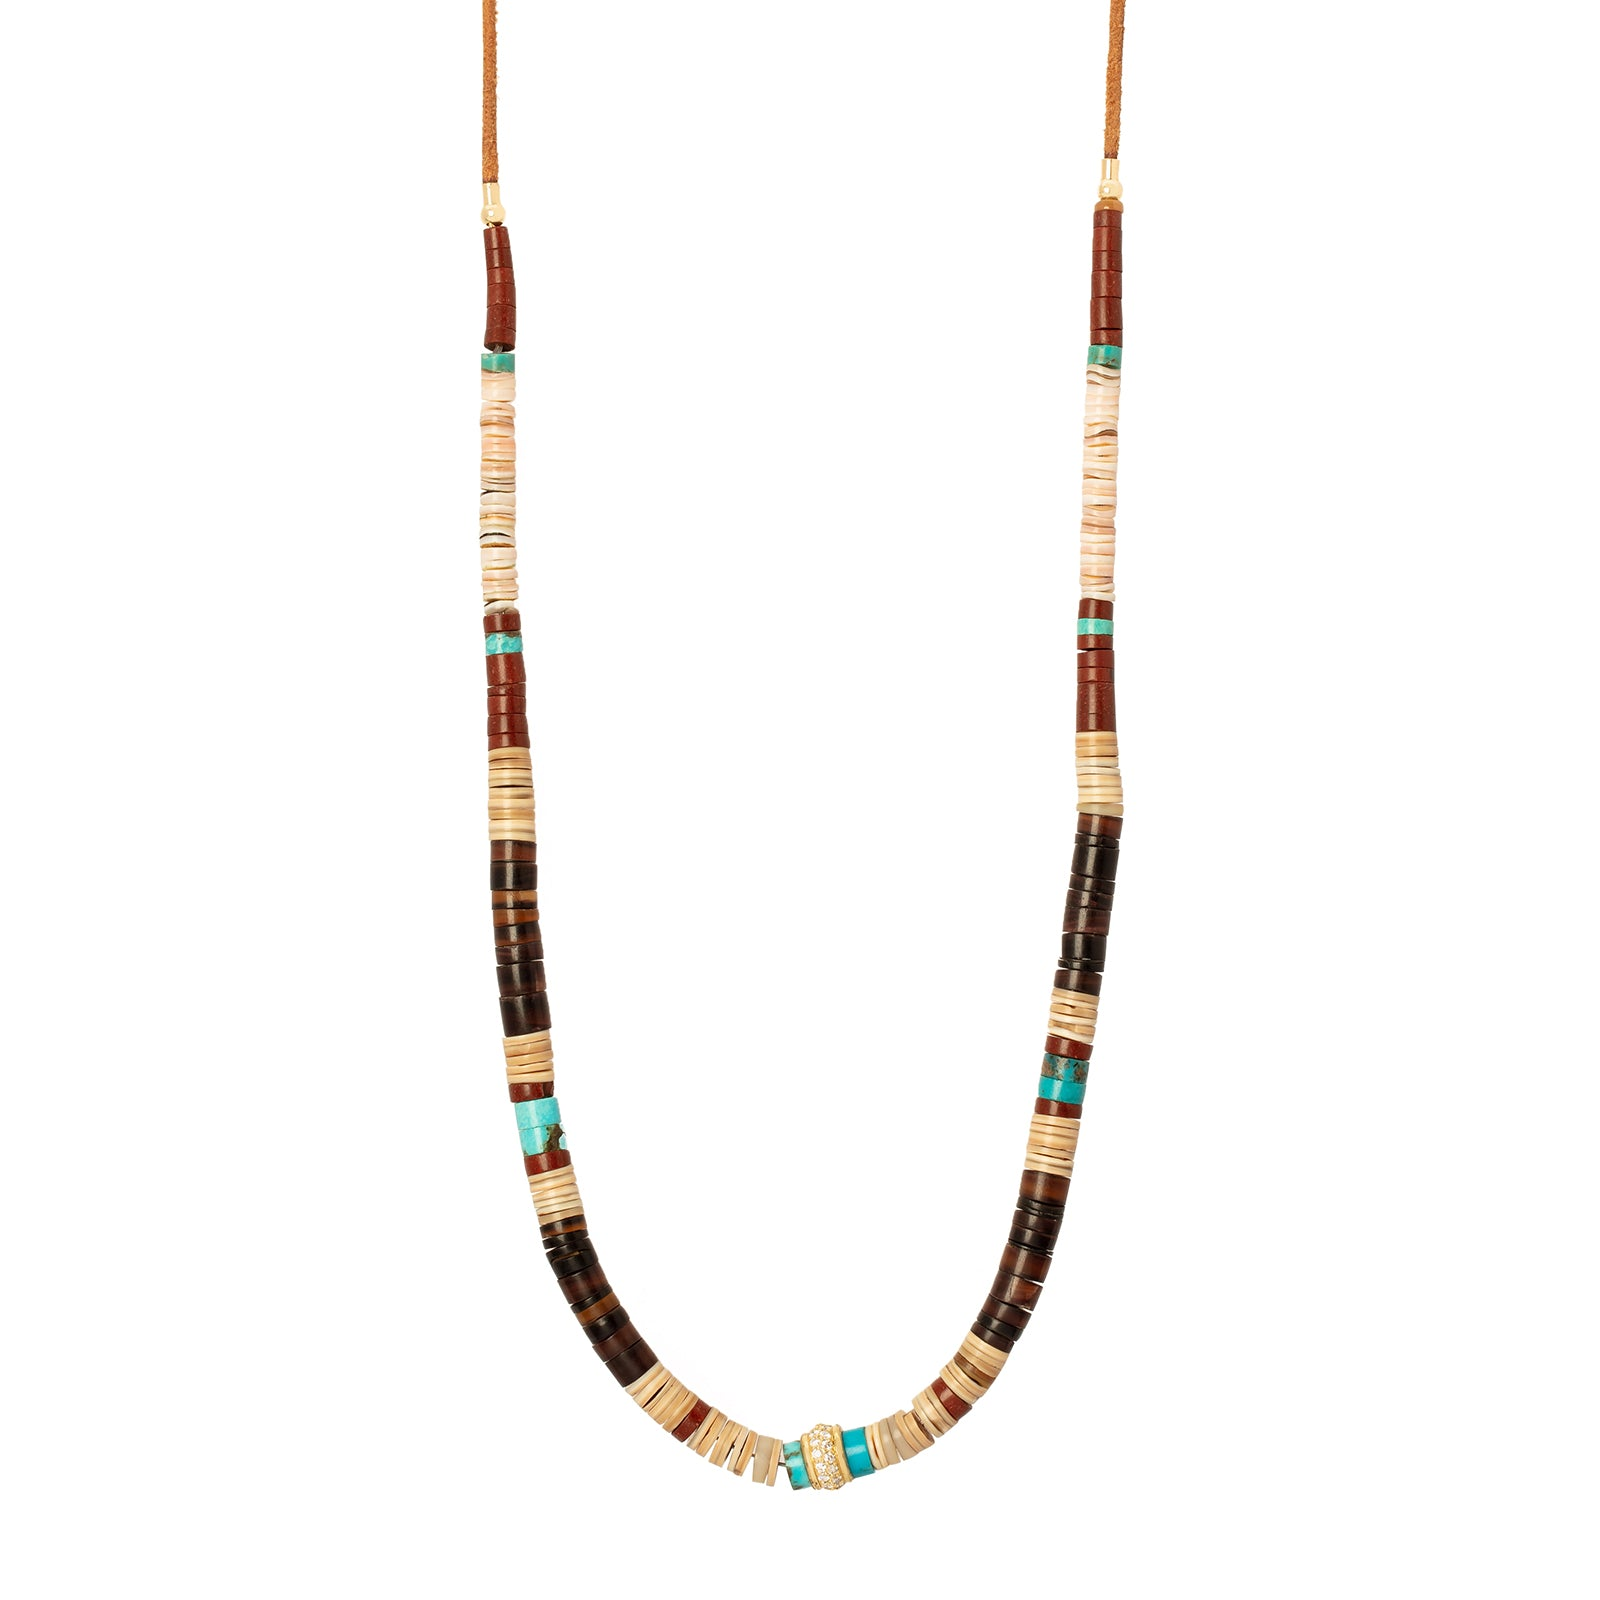 Jenna Blake Multi Color Wooden Bead Necklace - Necklaces - Broken English Jewelry